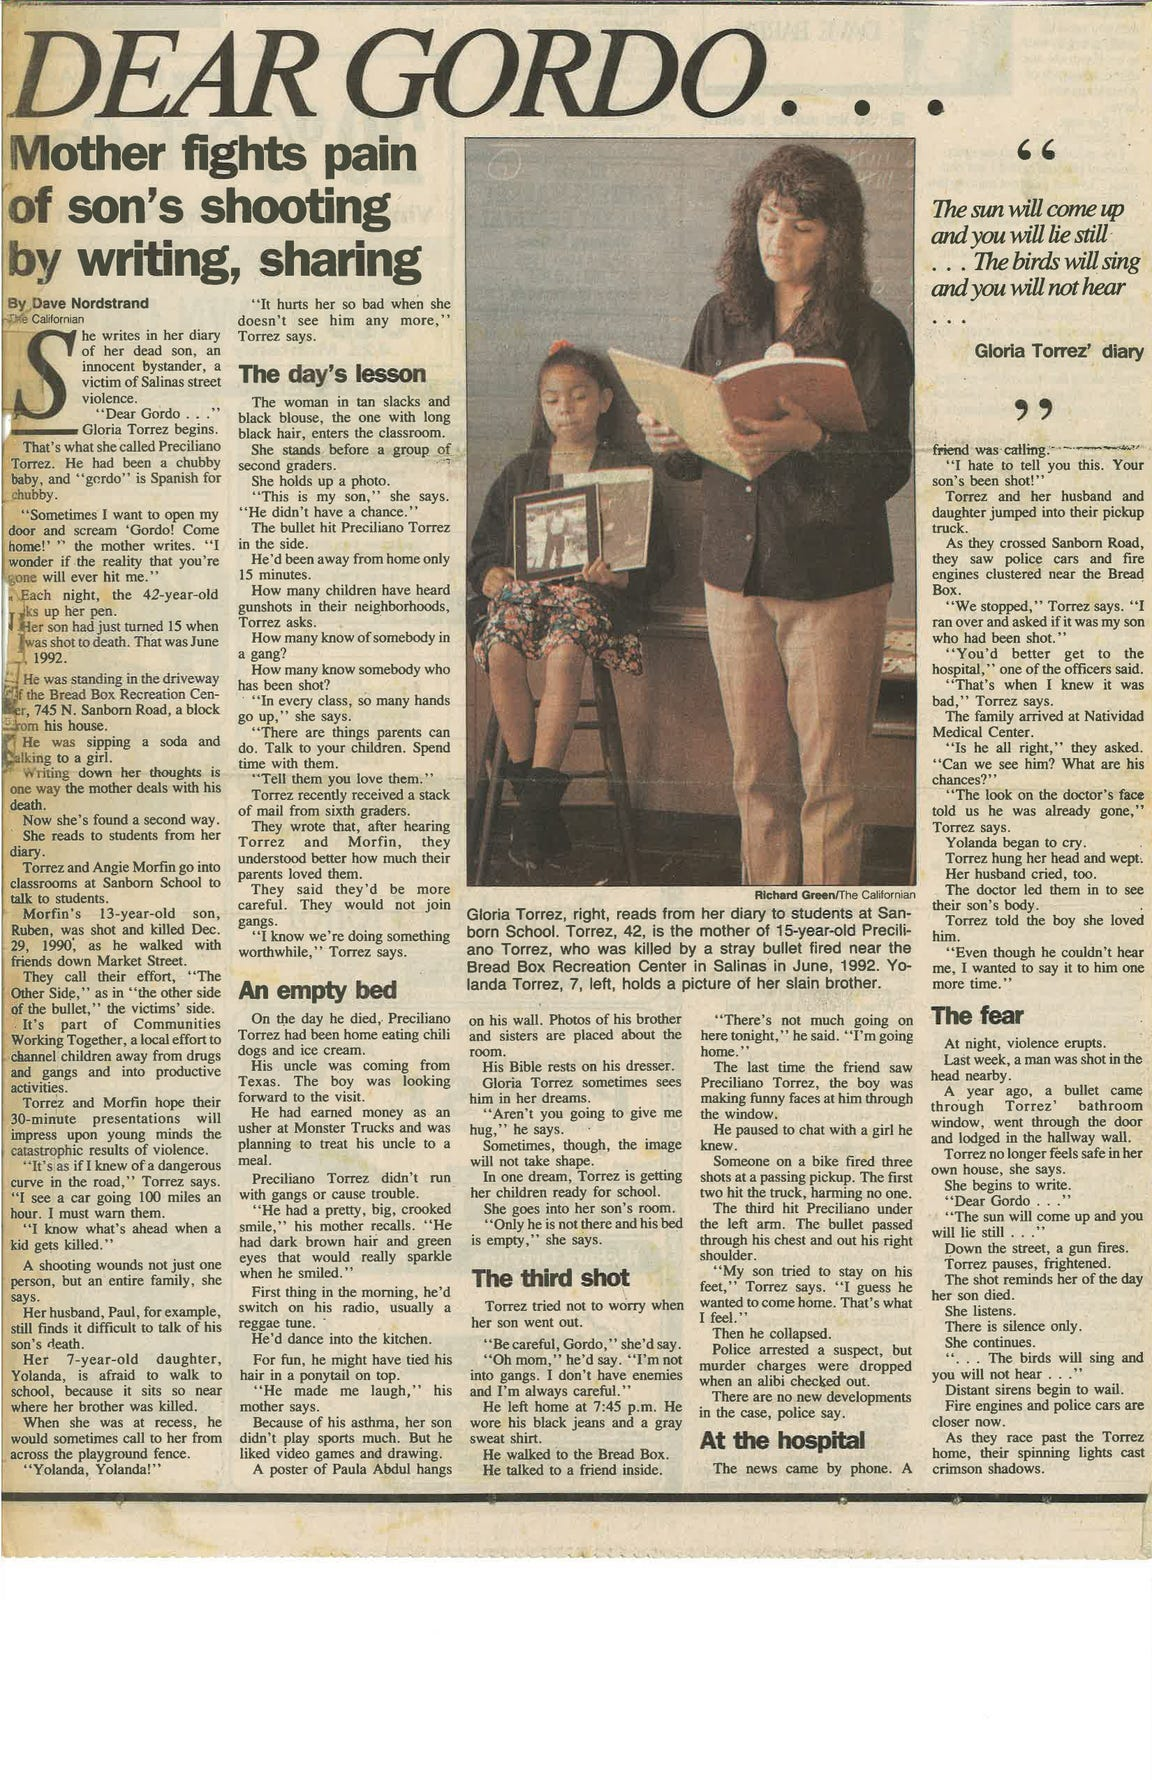 Torrez and her daughter Yolanda are pictured in this article about Torrez's activism in the wake of her son Preciliano's murer.